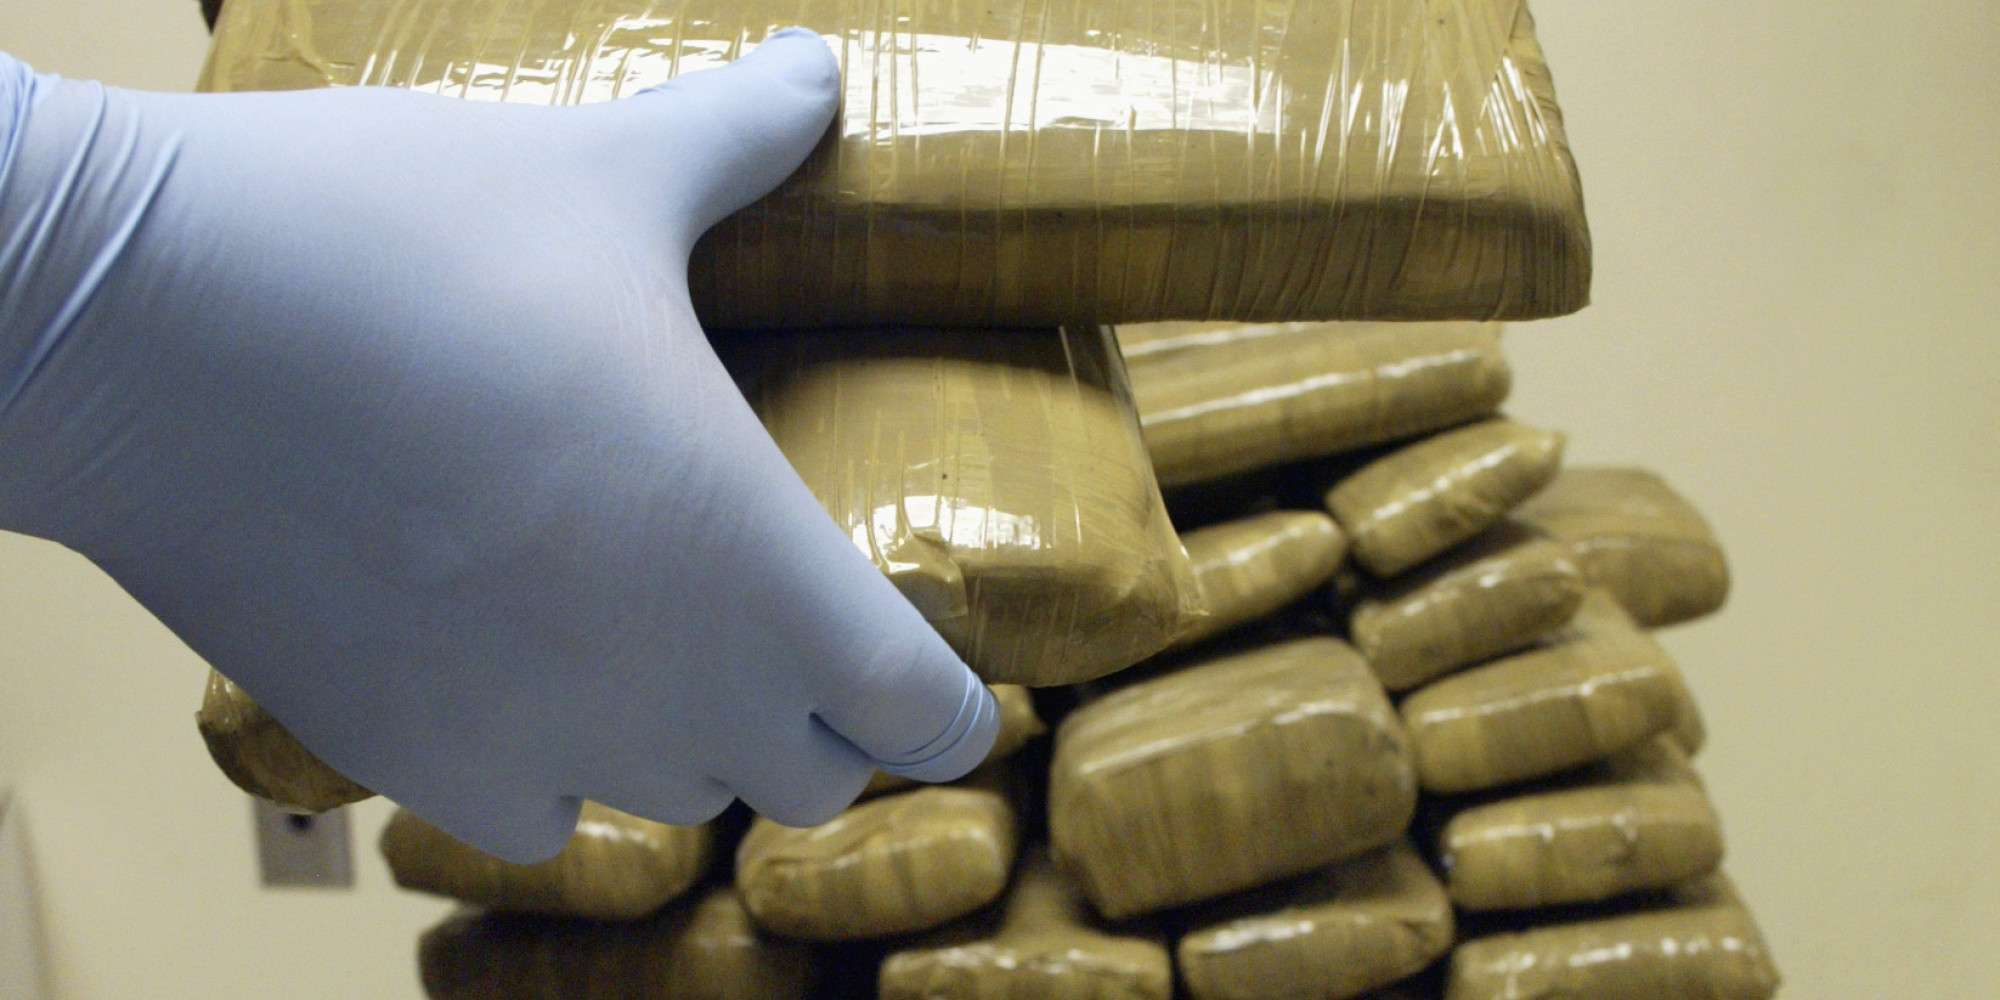 J'cans, Colombians Found Guilty of Smuggling 200lbs of Cocaine